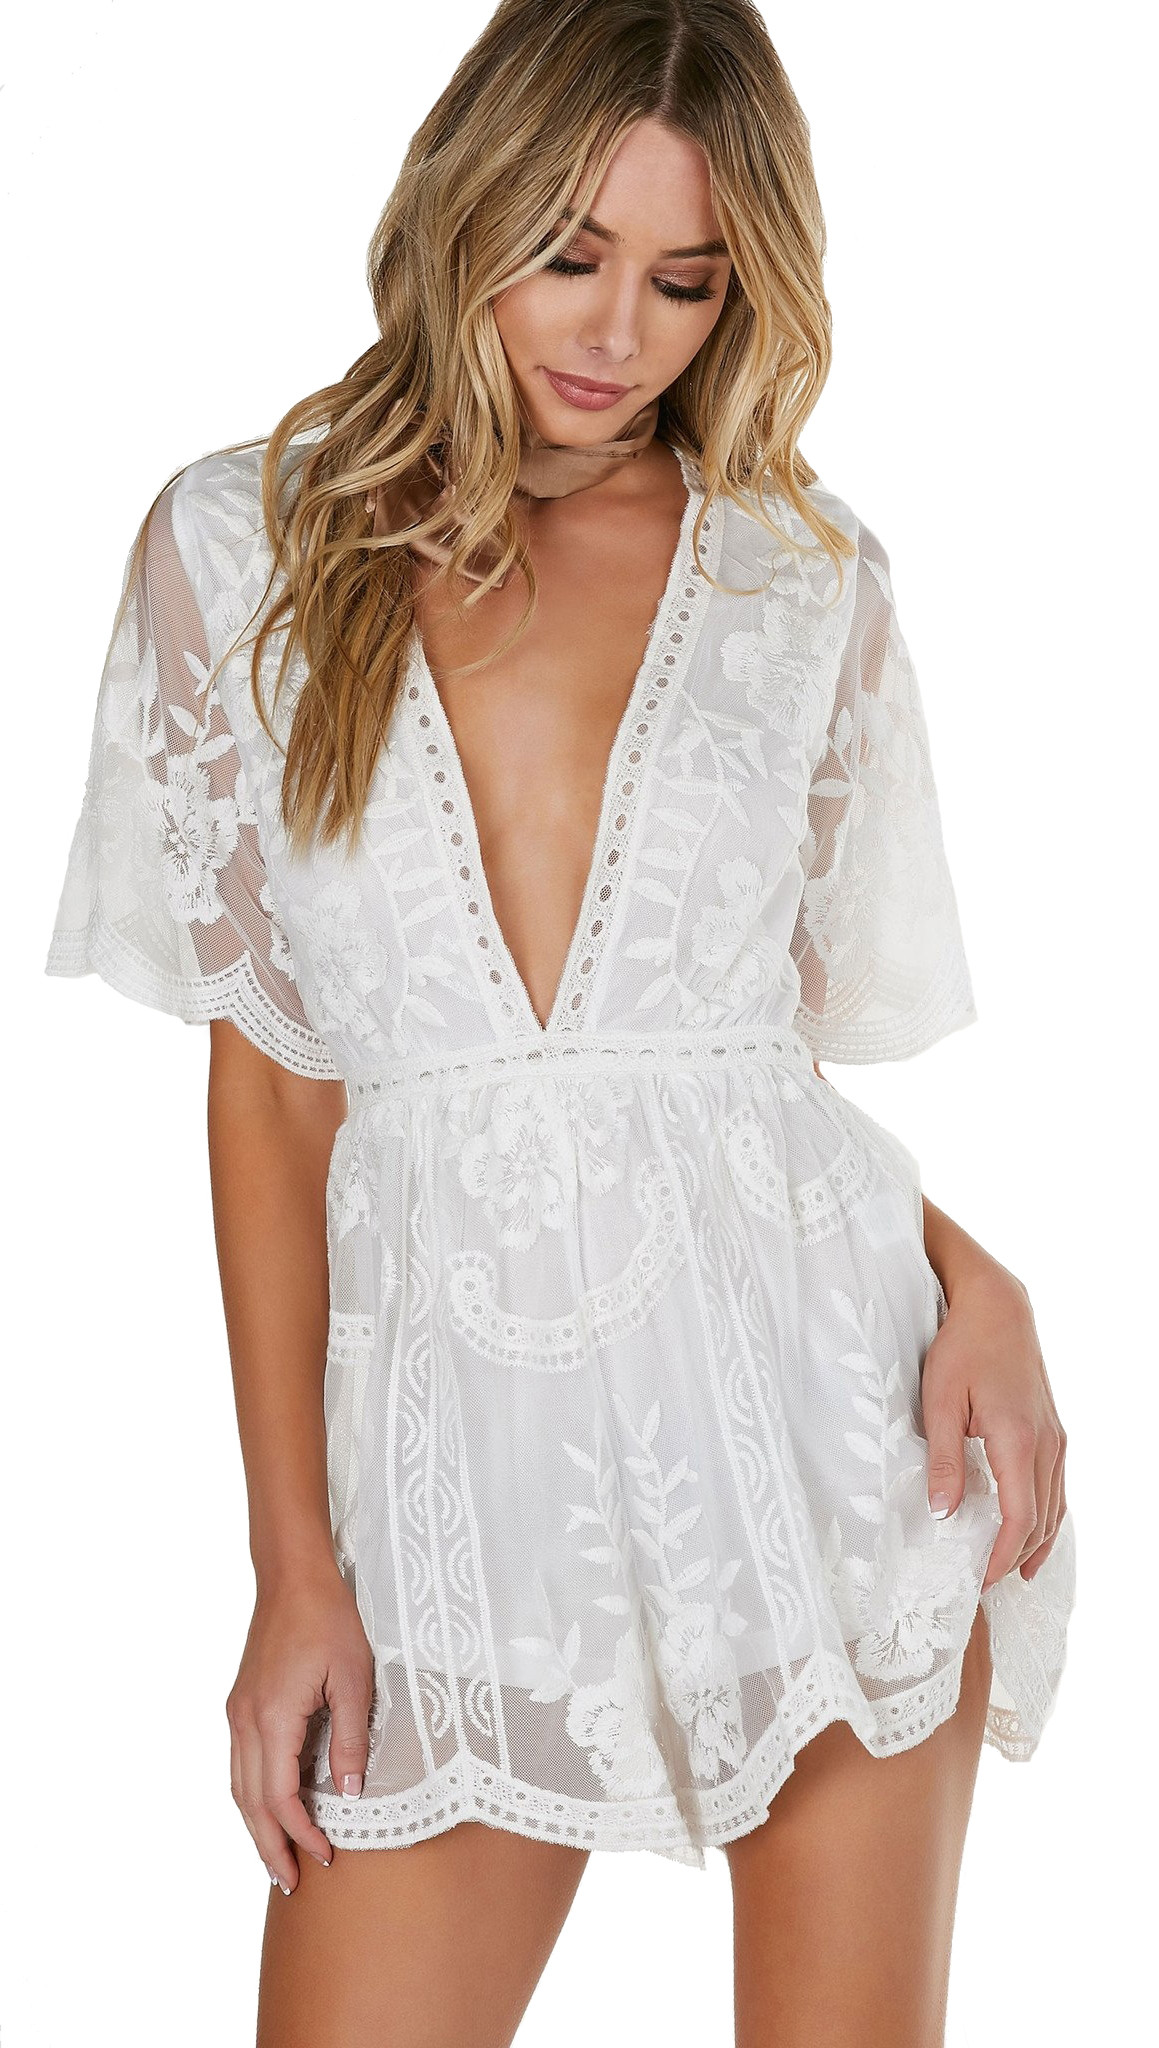 antique lace romper white crochet shorts